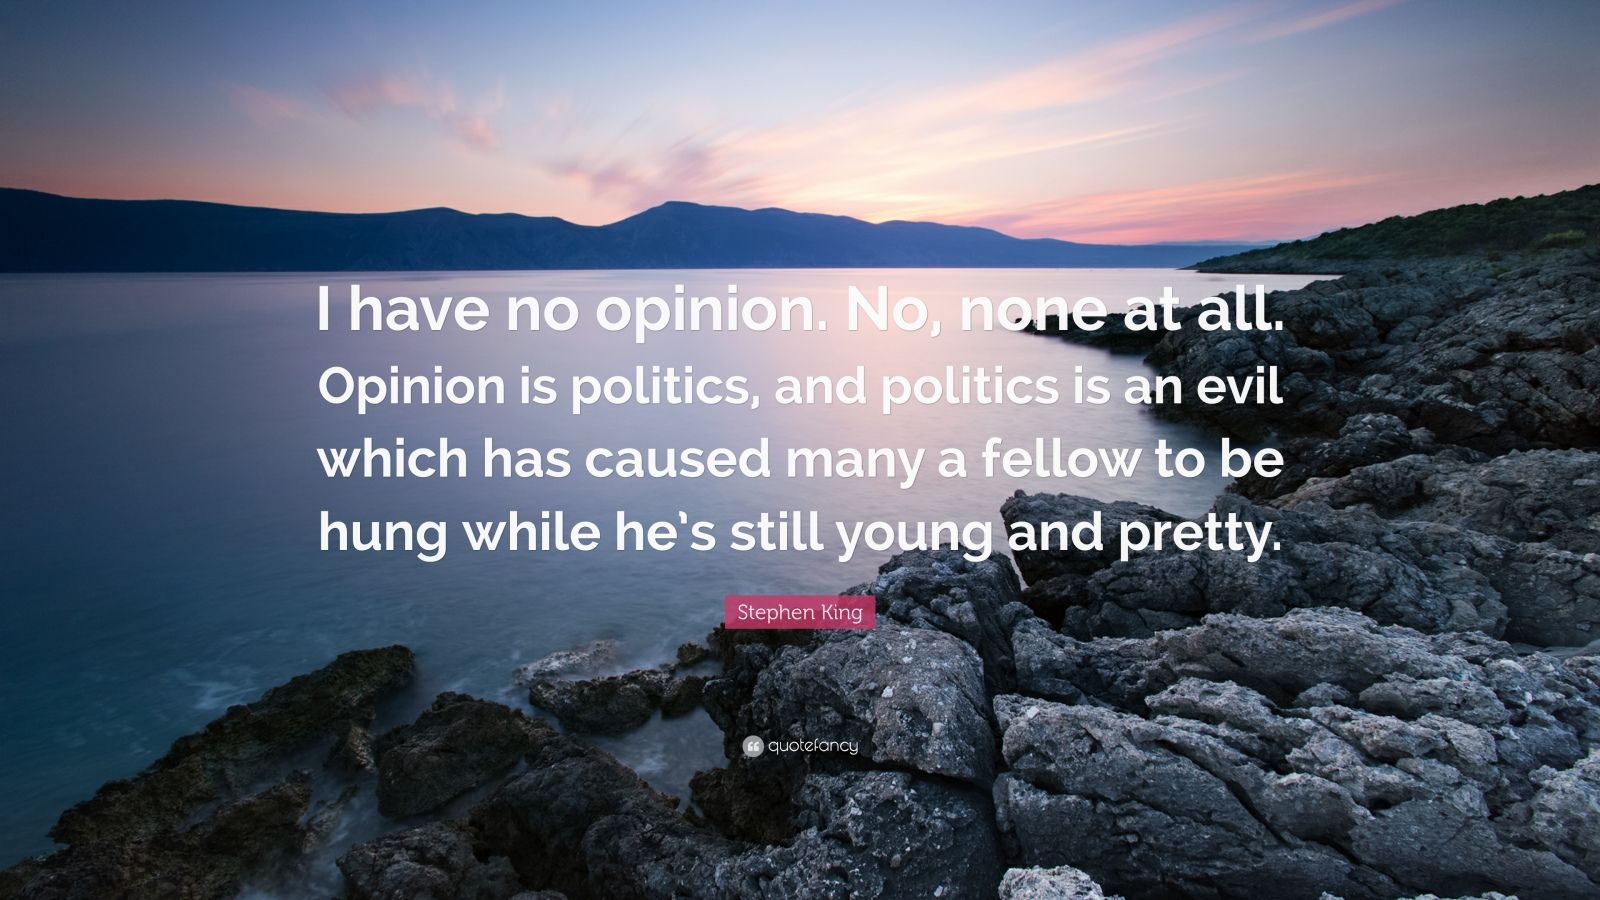 """Stephen King Quote: """"I have no opinion. No, none at all. Opinion is politics, and politics is an evil which has caused many a fellow to be hung while he's still young and pretty."""""""